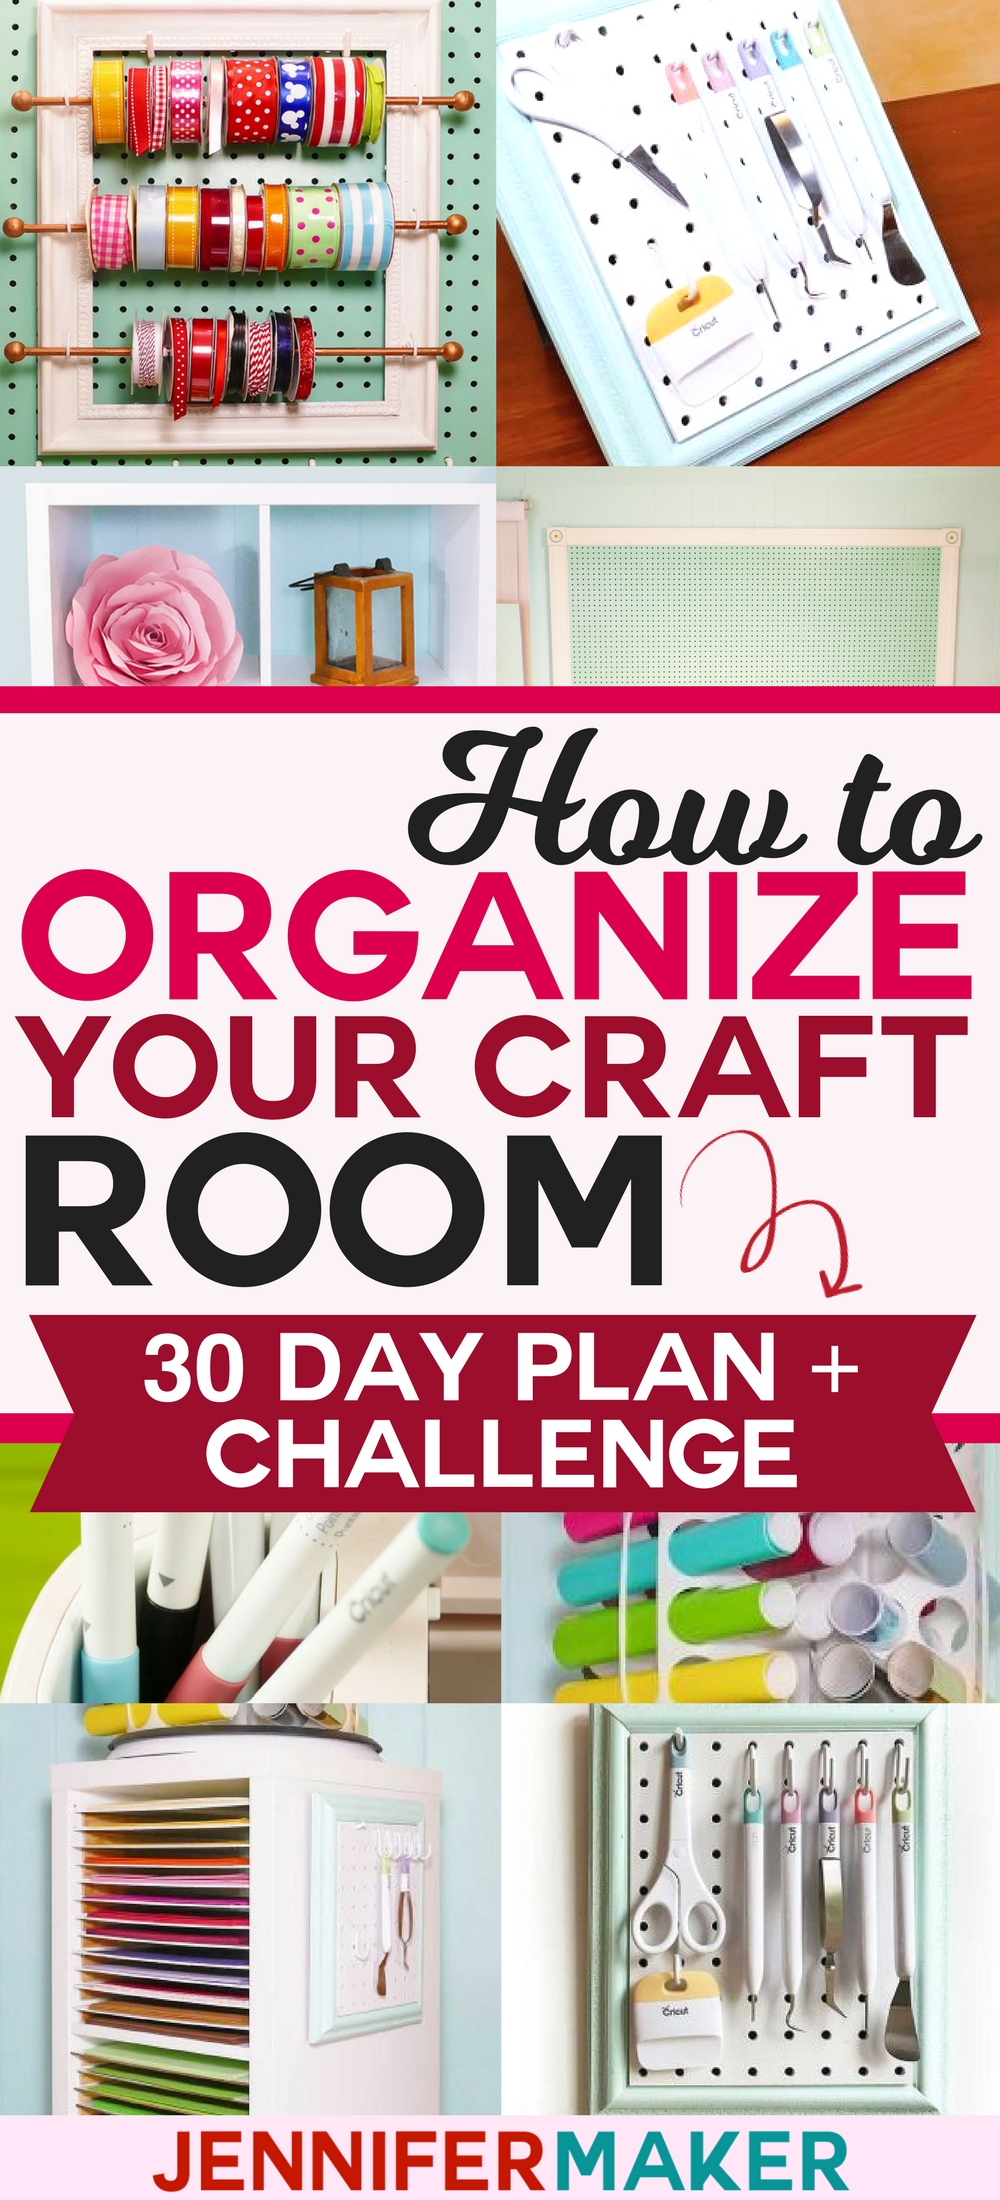 How to Organize Your Craft Room in 30 Days - Free Email Challenge, Tips, Tricks, and Tutorials!